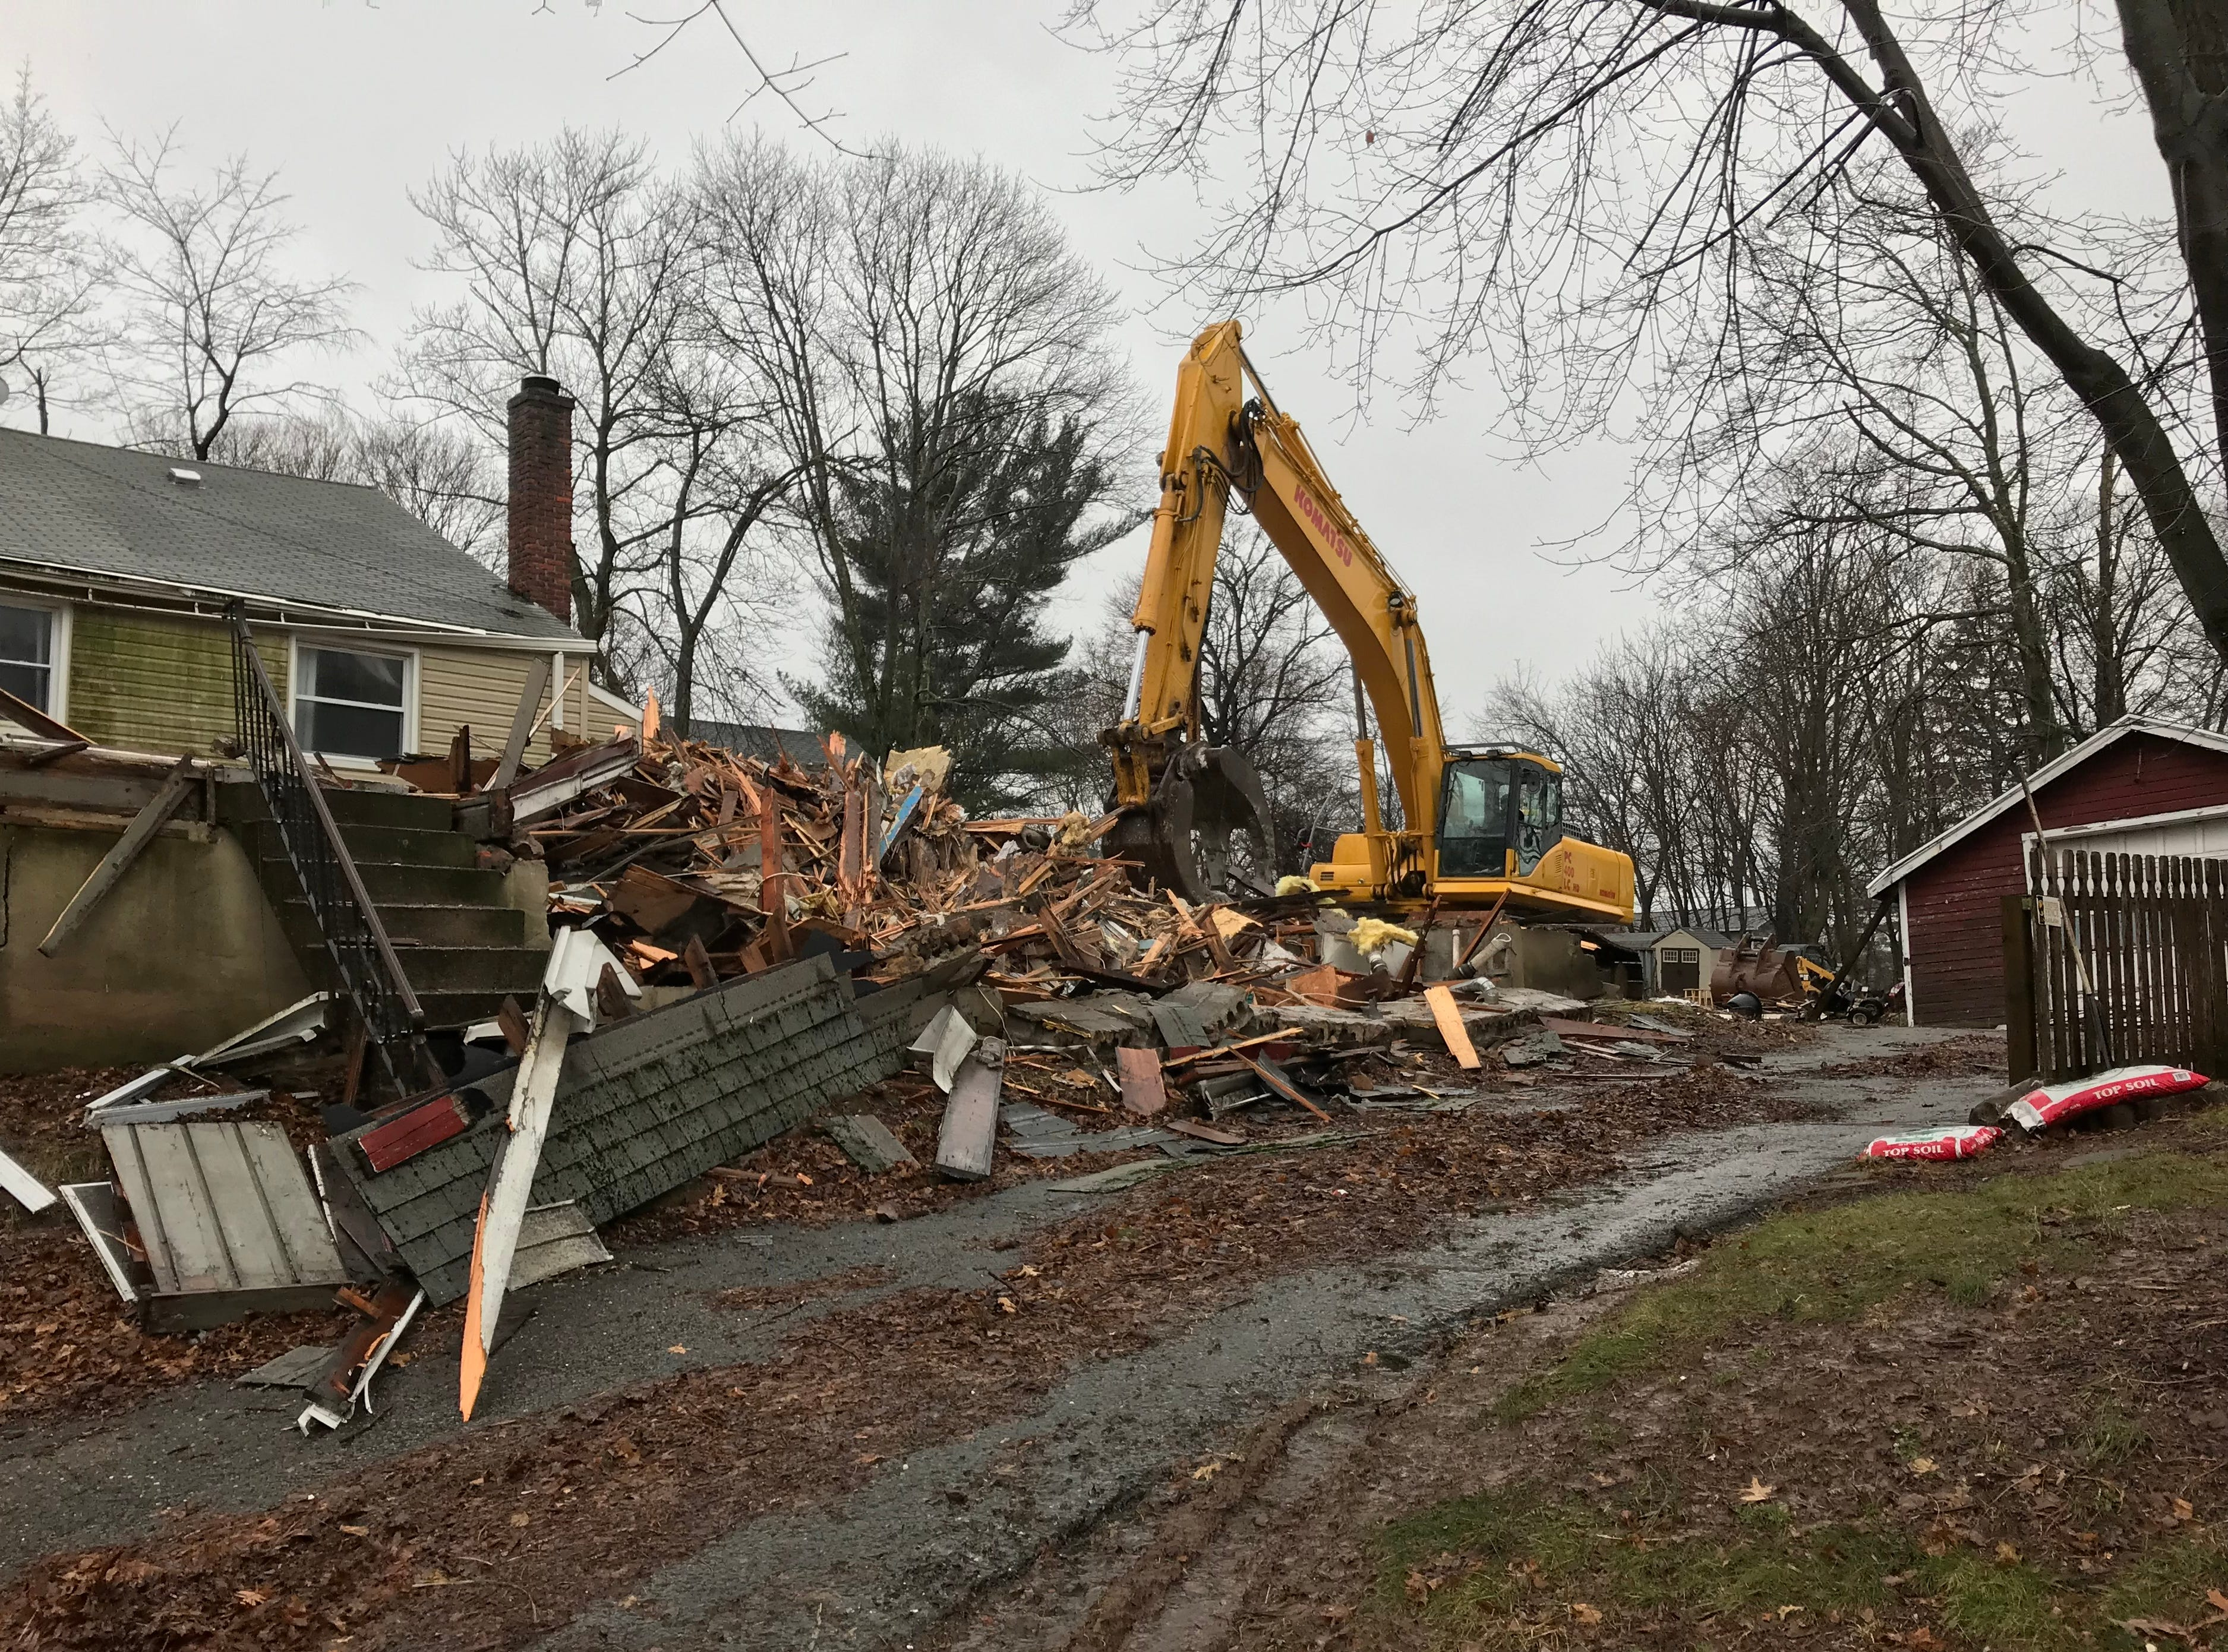 A grapple demolishes a building on South End Firehouse's property in Cedar Grove on Jan. 24, 2019.